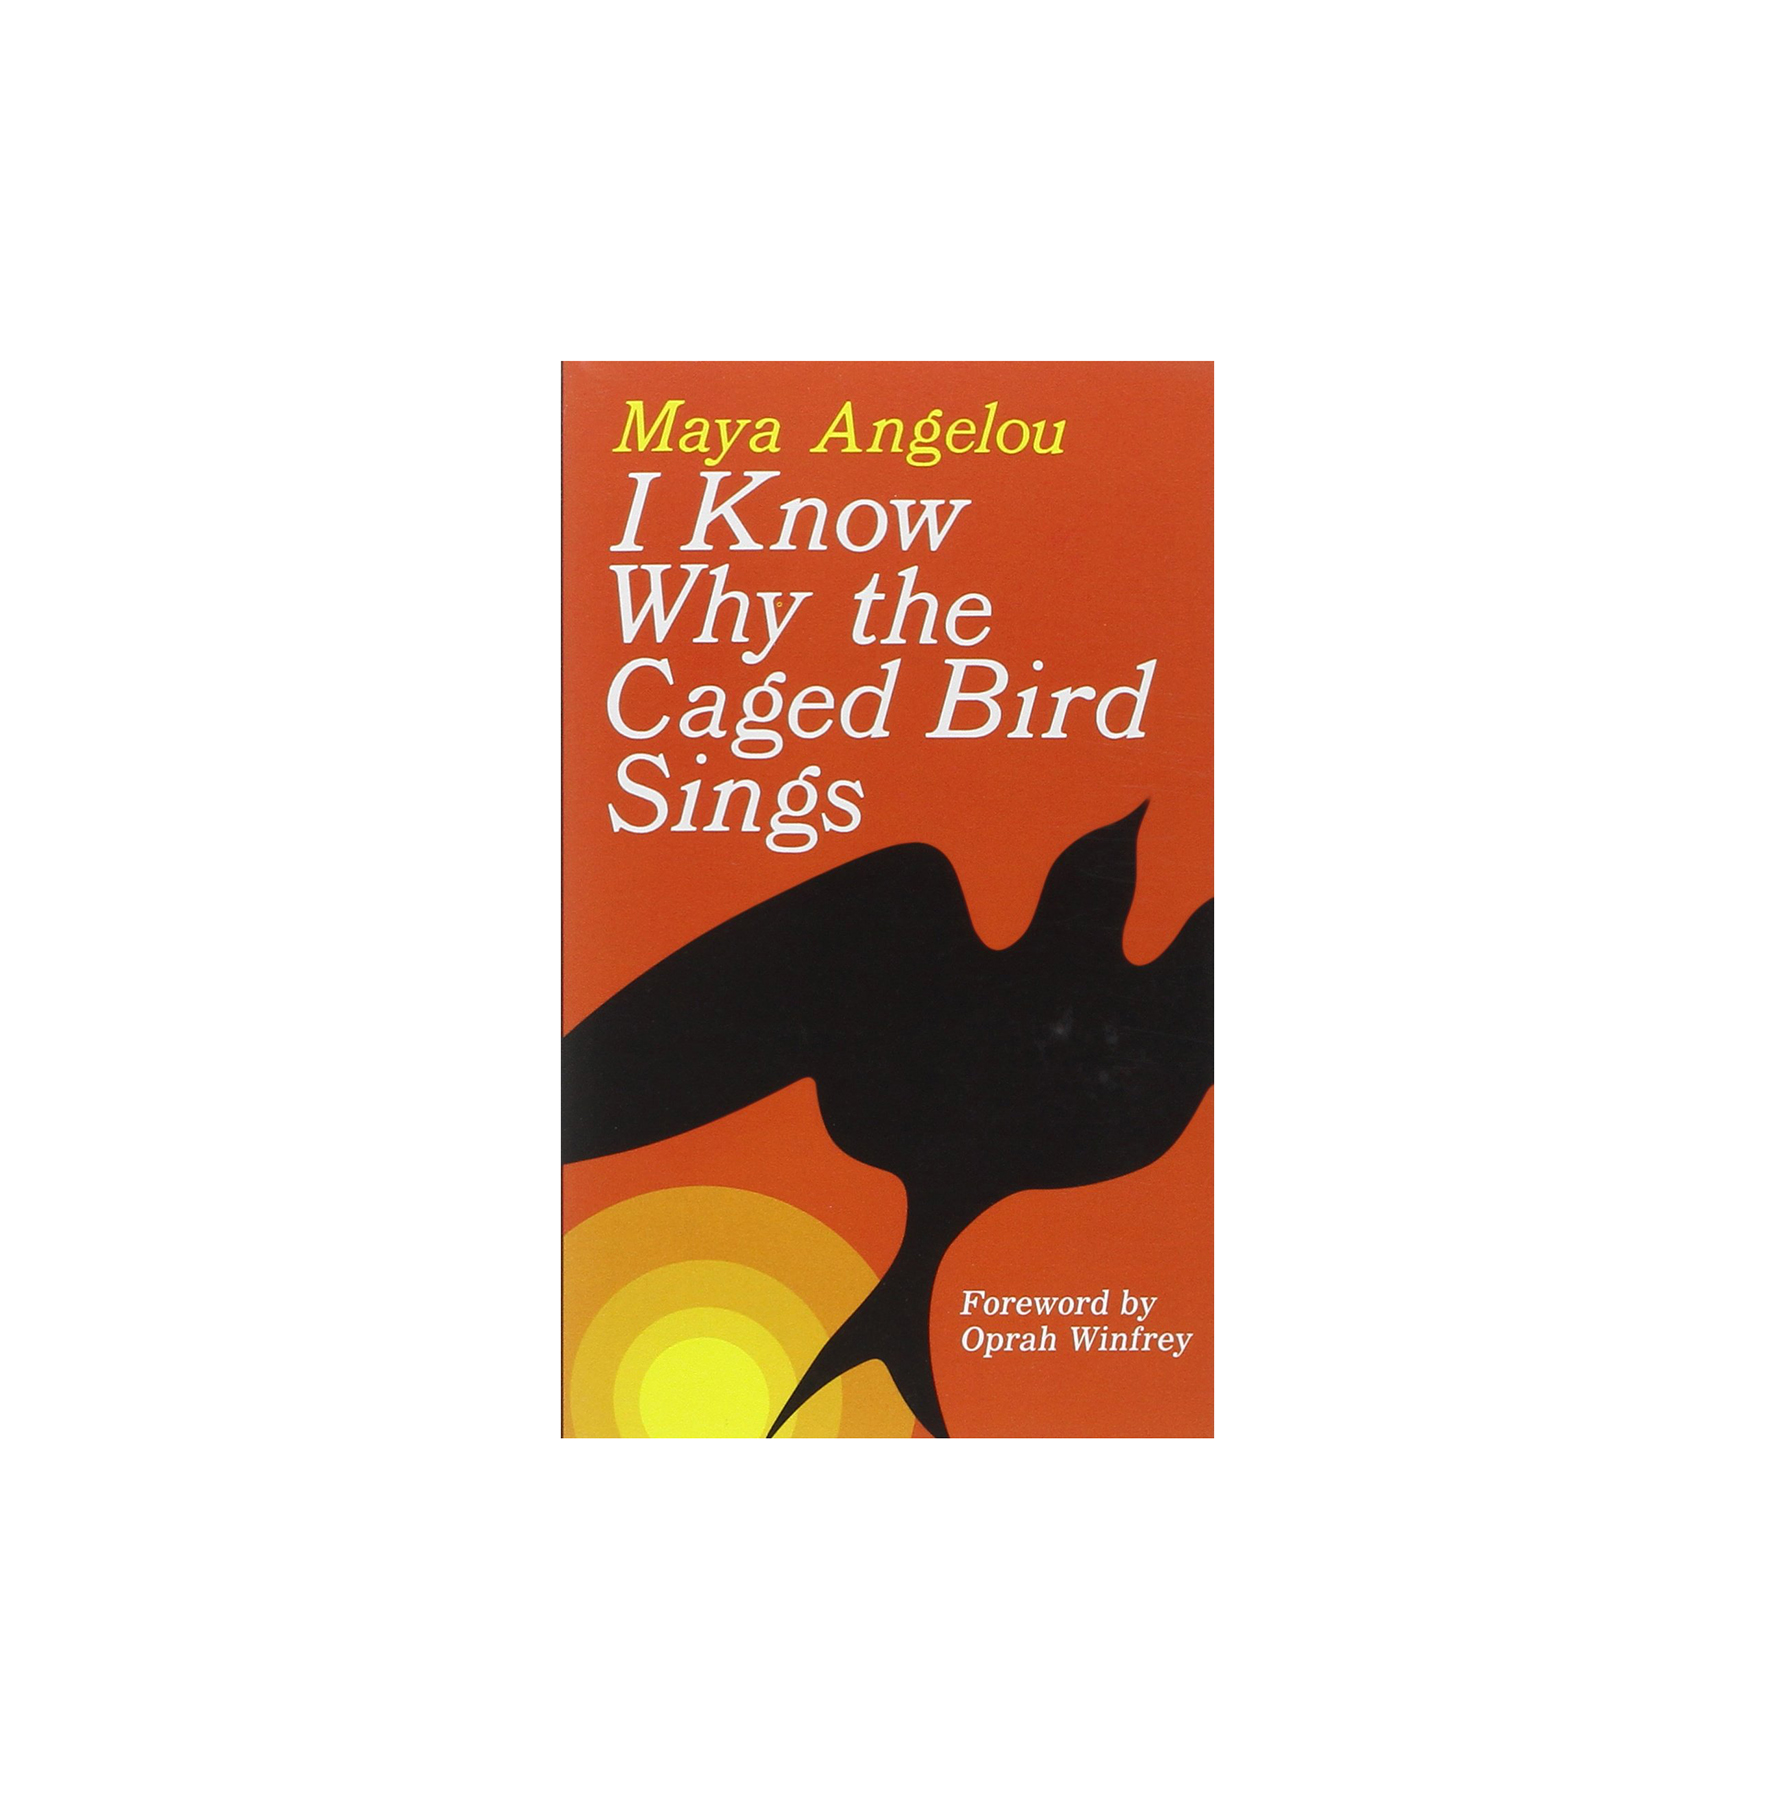 I Know Why the Caged Bird Sings, by Maya Angelou (Banned Books 2017)